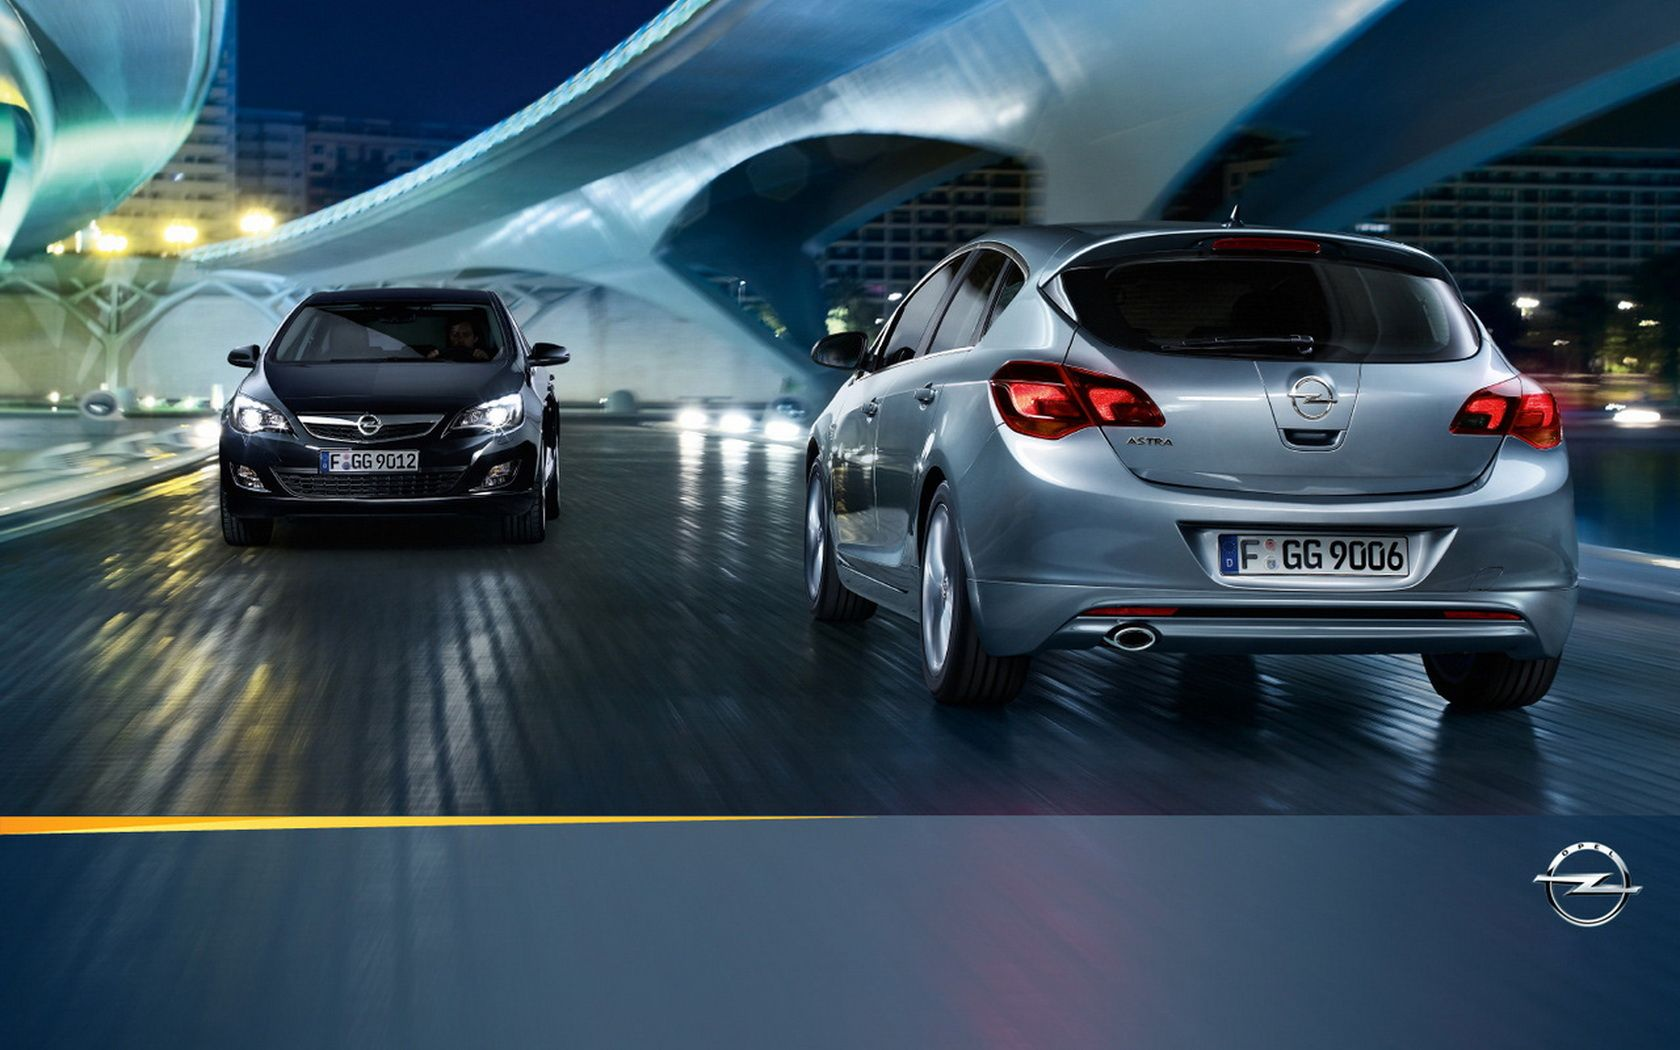 Opel Astra wallpapers and images - wallpapers, pictures, photos